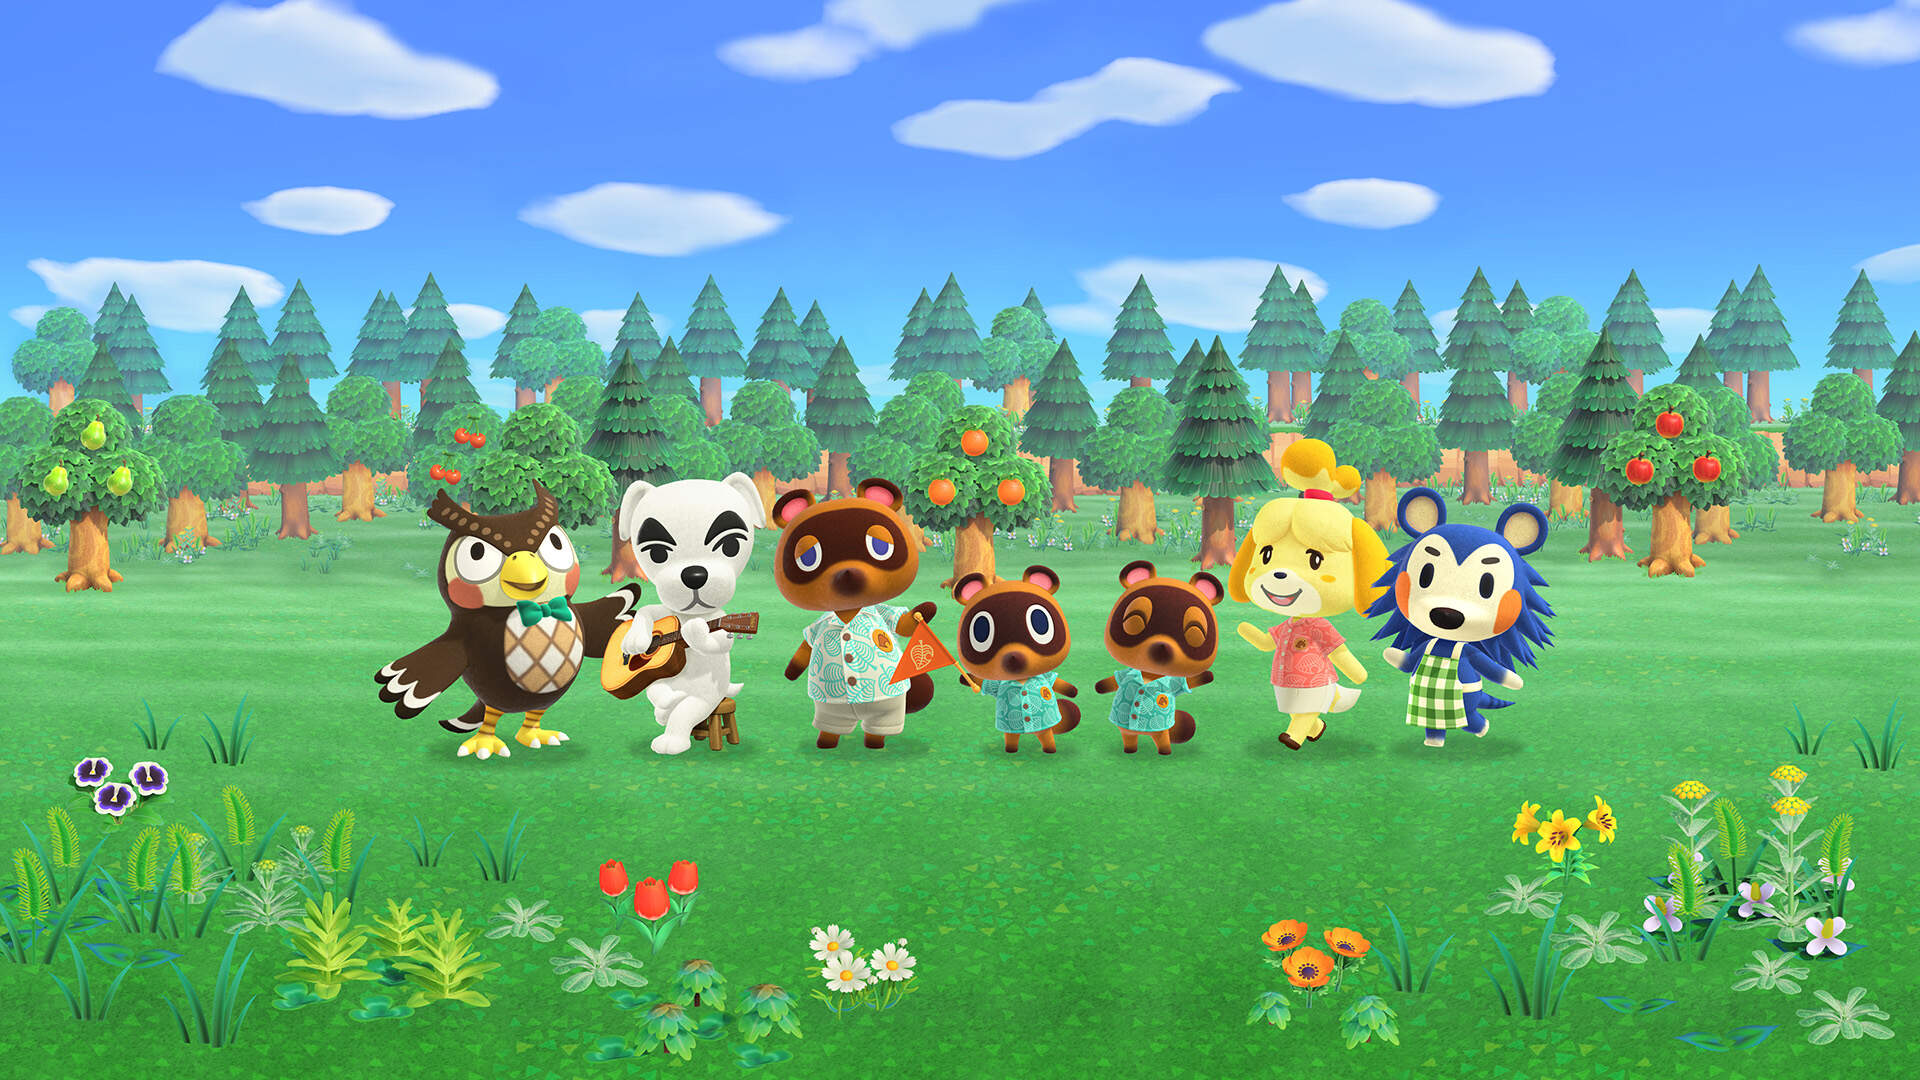 Animal Crossing New Horizons: 'If You Could Only Bring ONE Thing With You' Question - What Does It Mean?